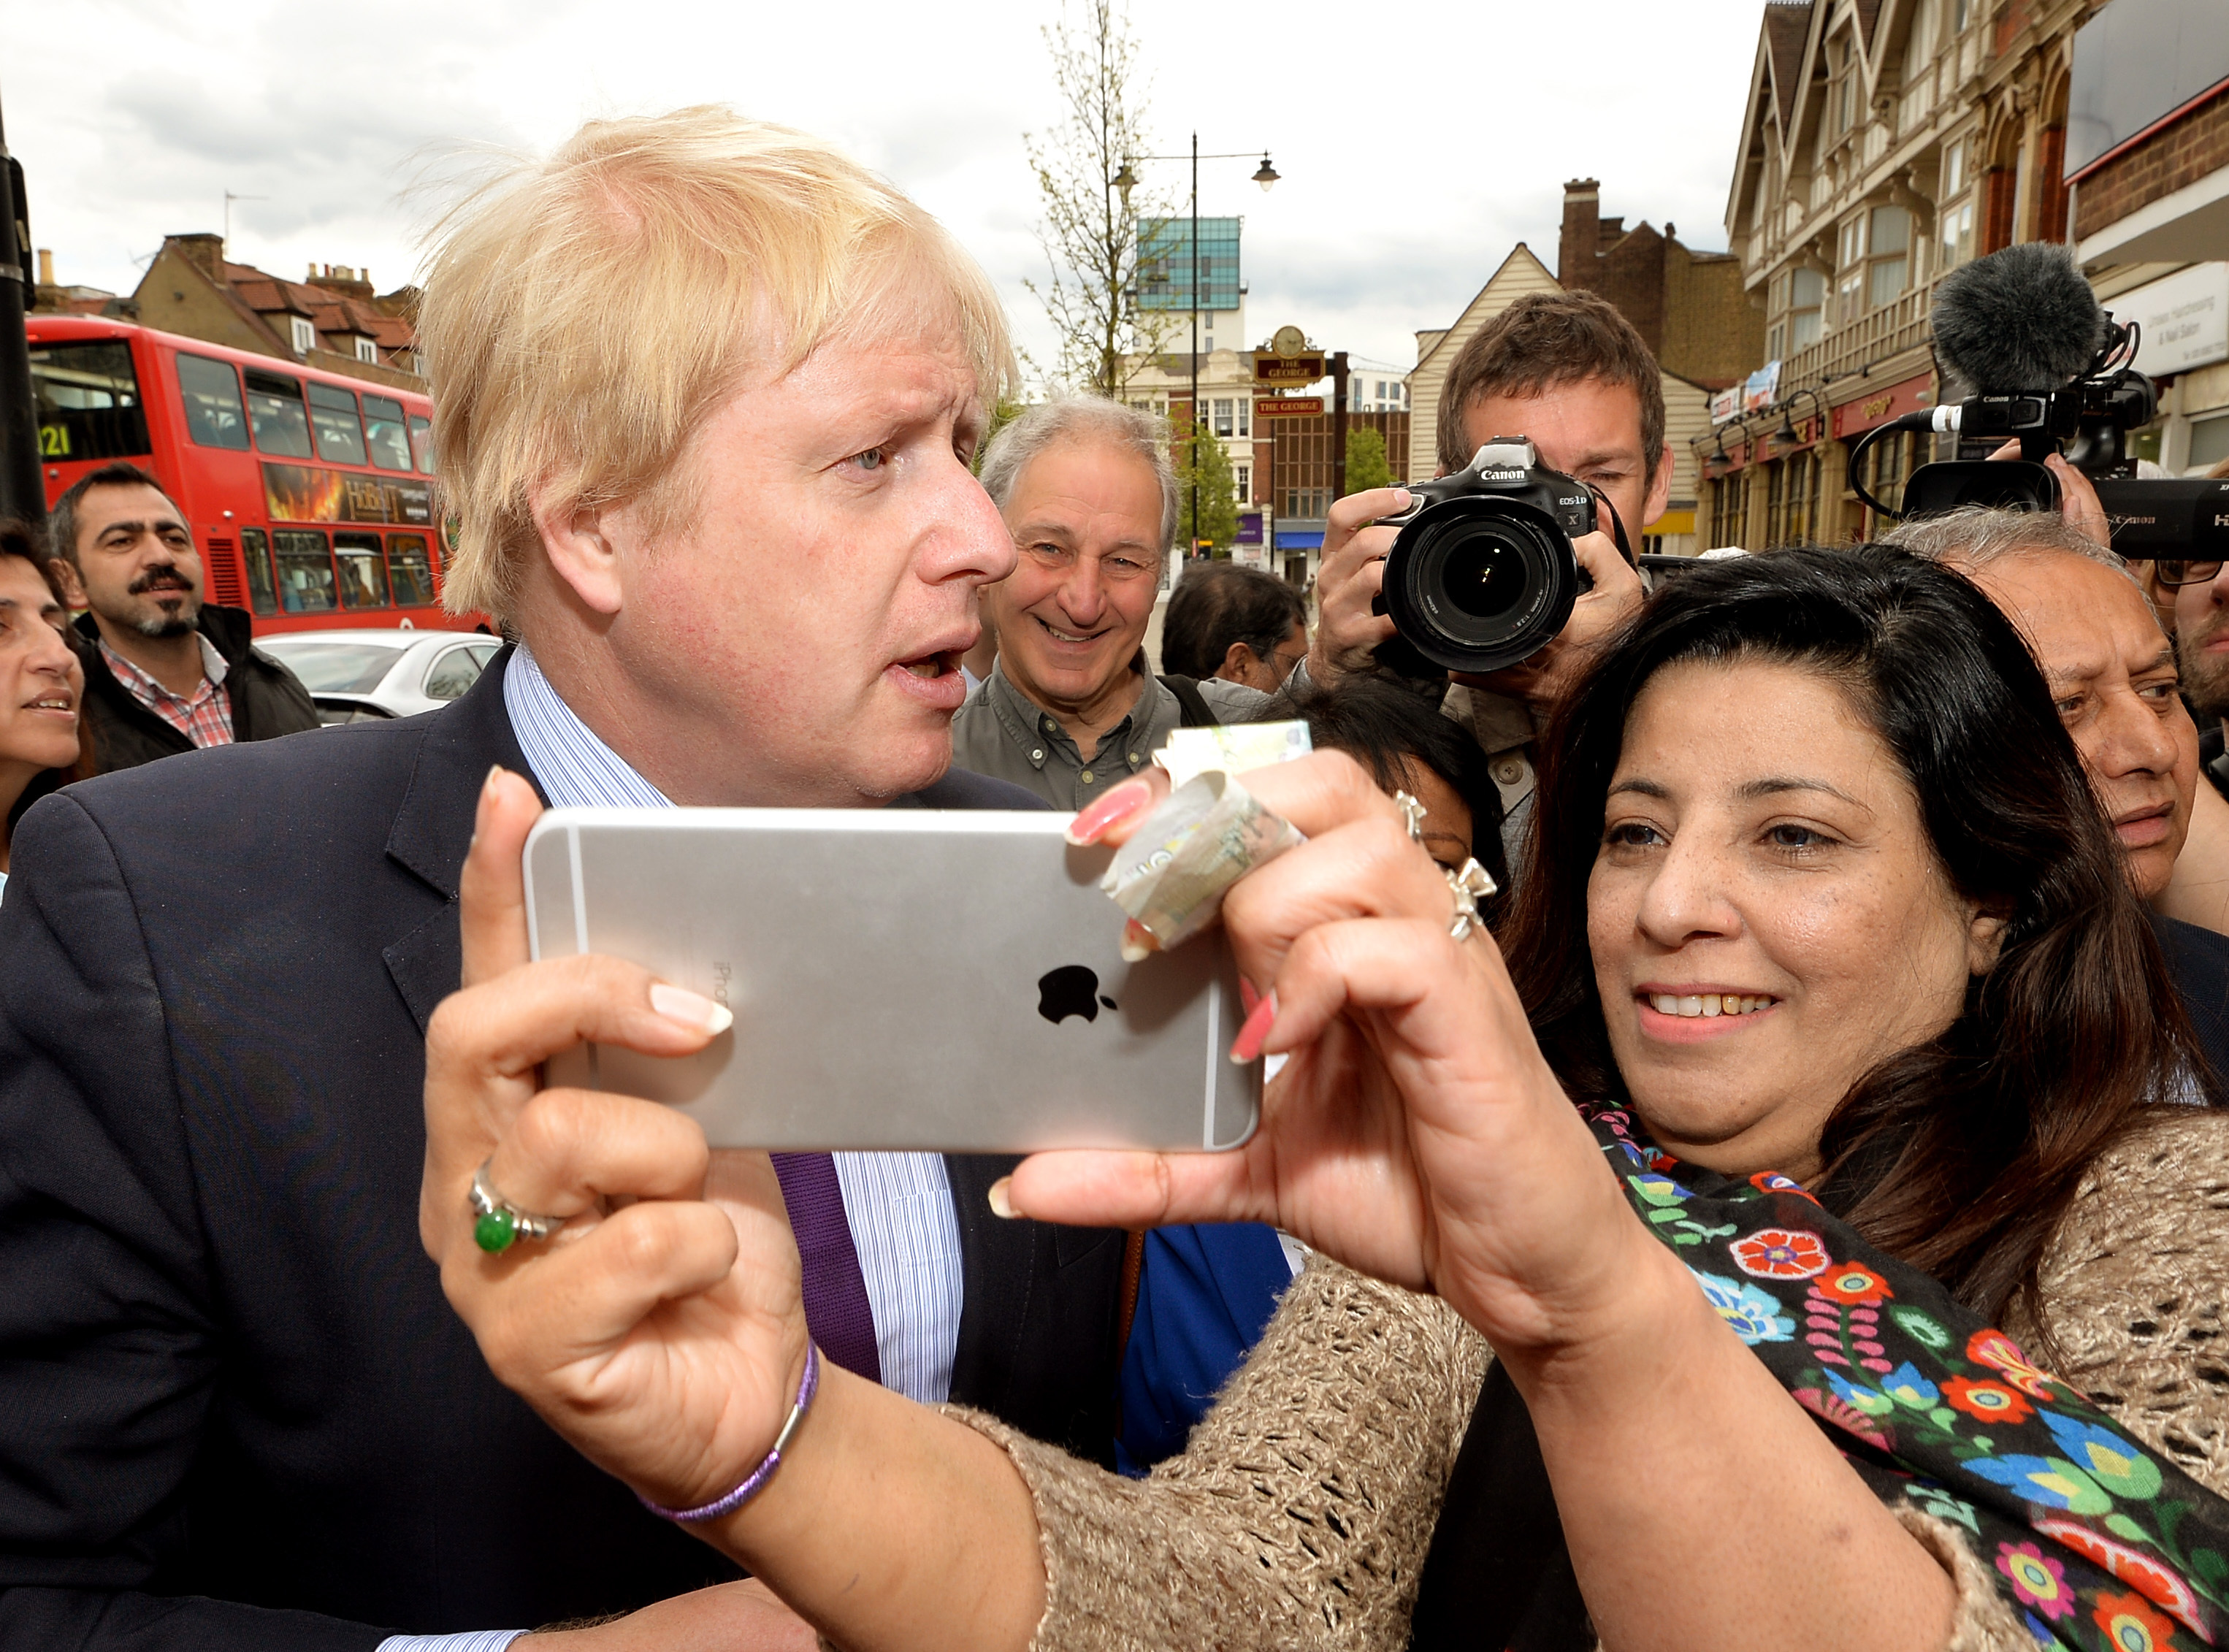 A woman takes a selfie photo with Mayor of London Boris Johnson as he speak to residents in Enfield town centre while on the General Election campaign trail, as he gives his support to local Conservative candidate Nick De Bois (not in picture).